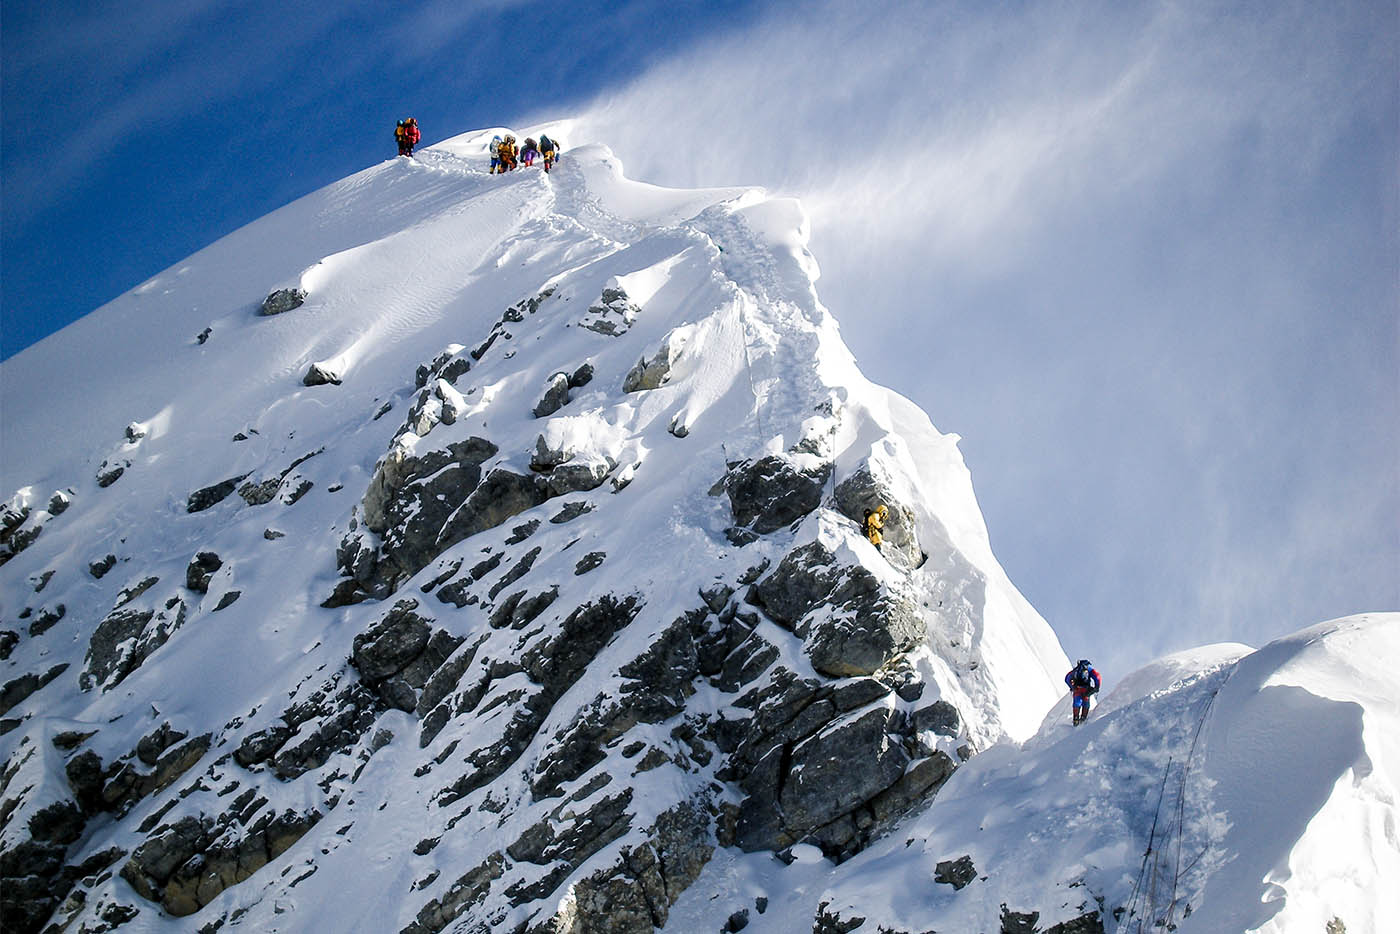 Tallest mountain in the world, Everest - 8848 meters.